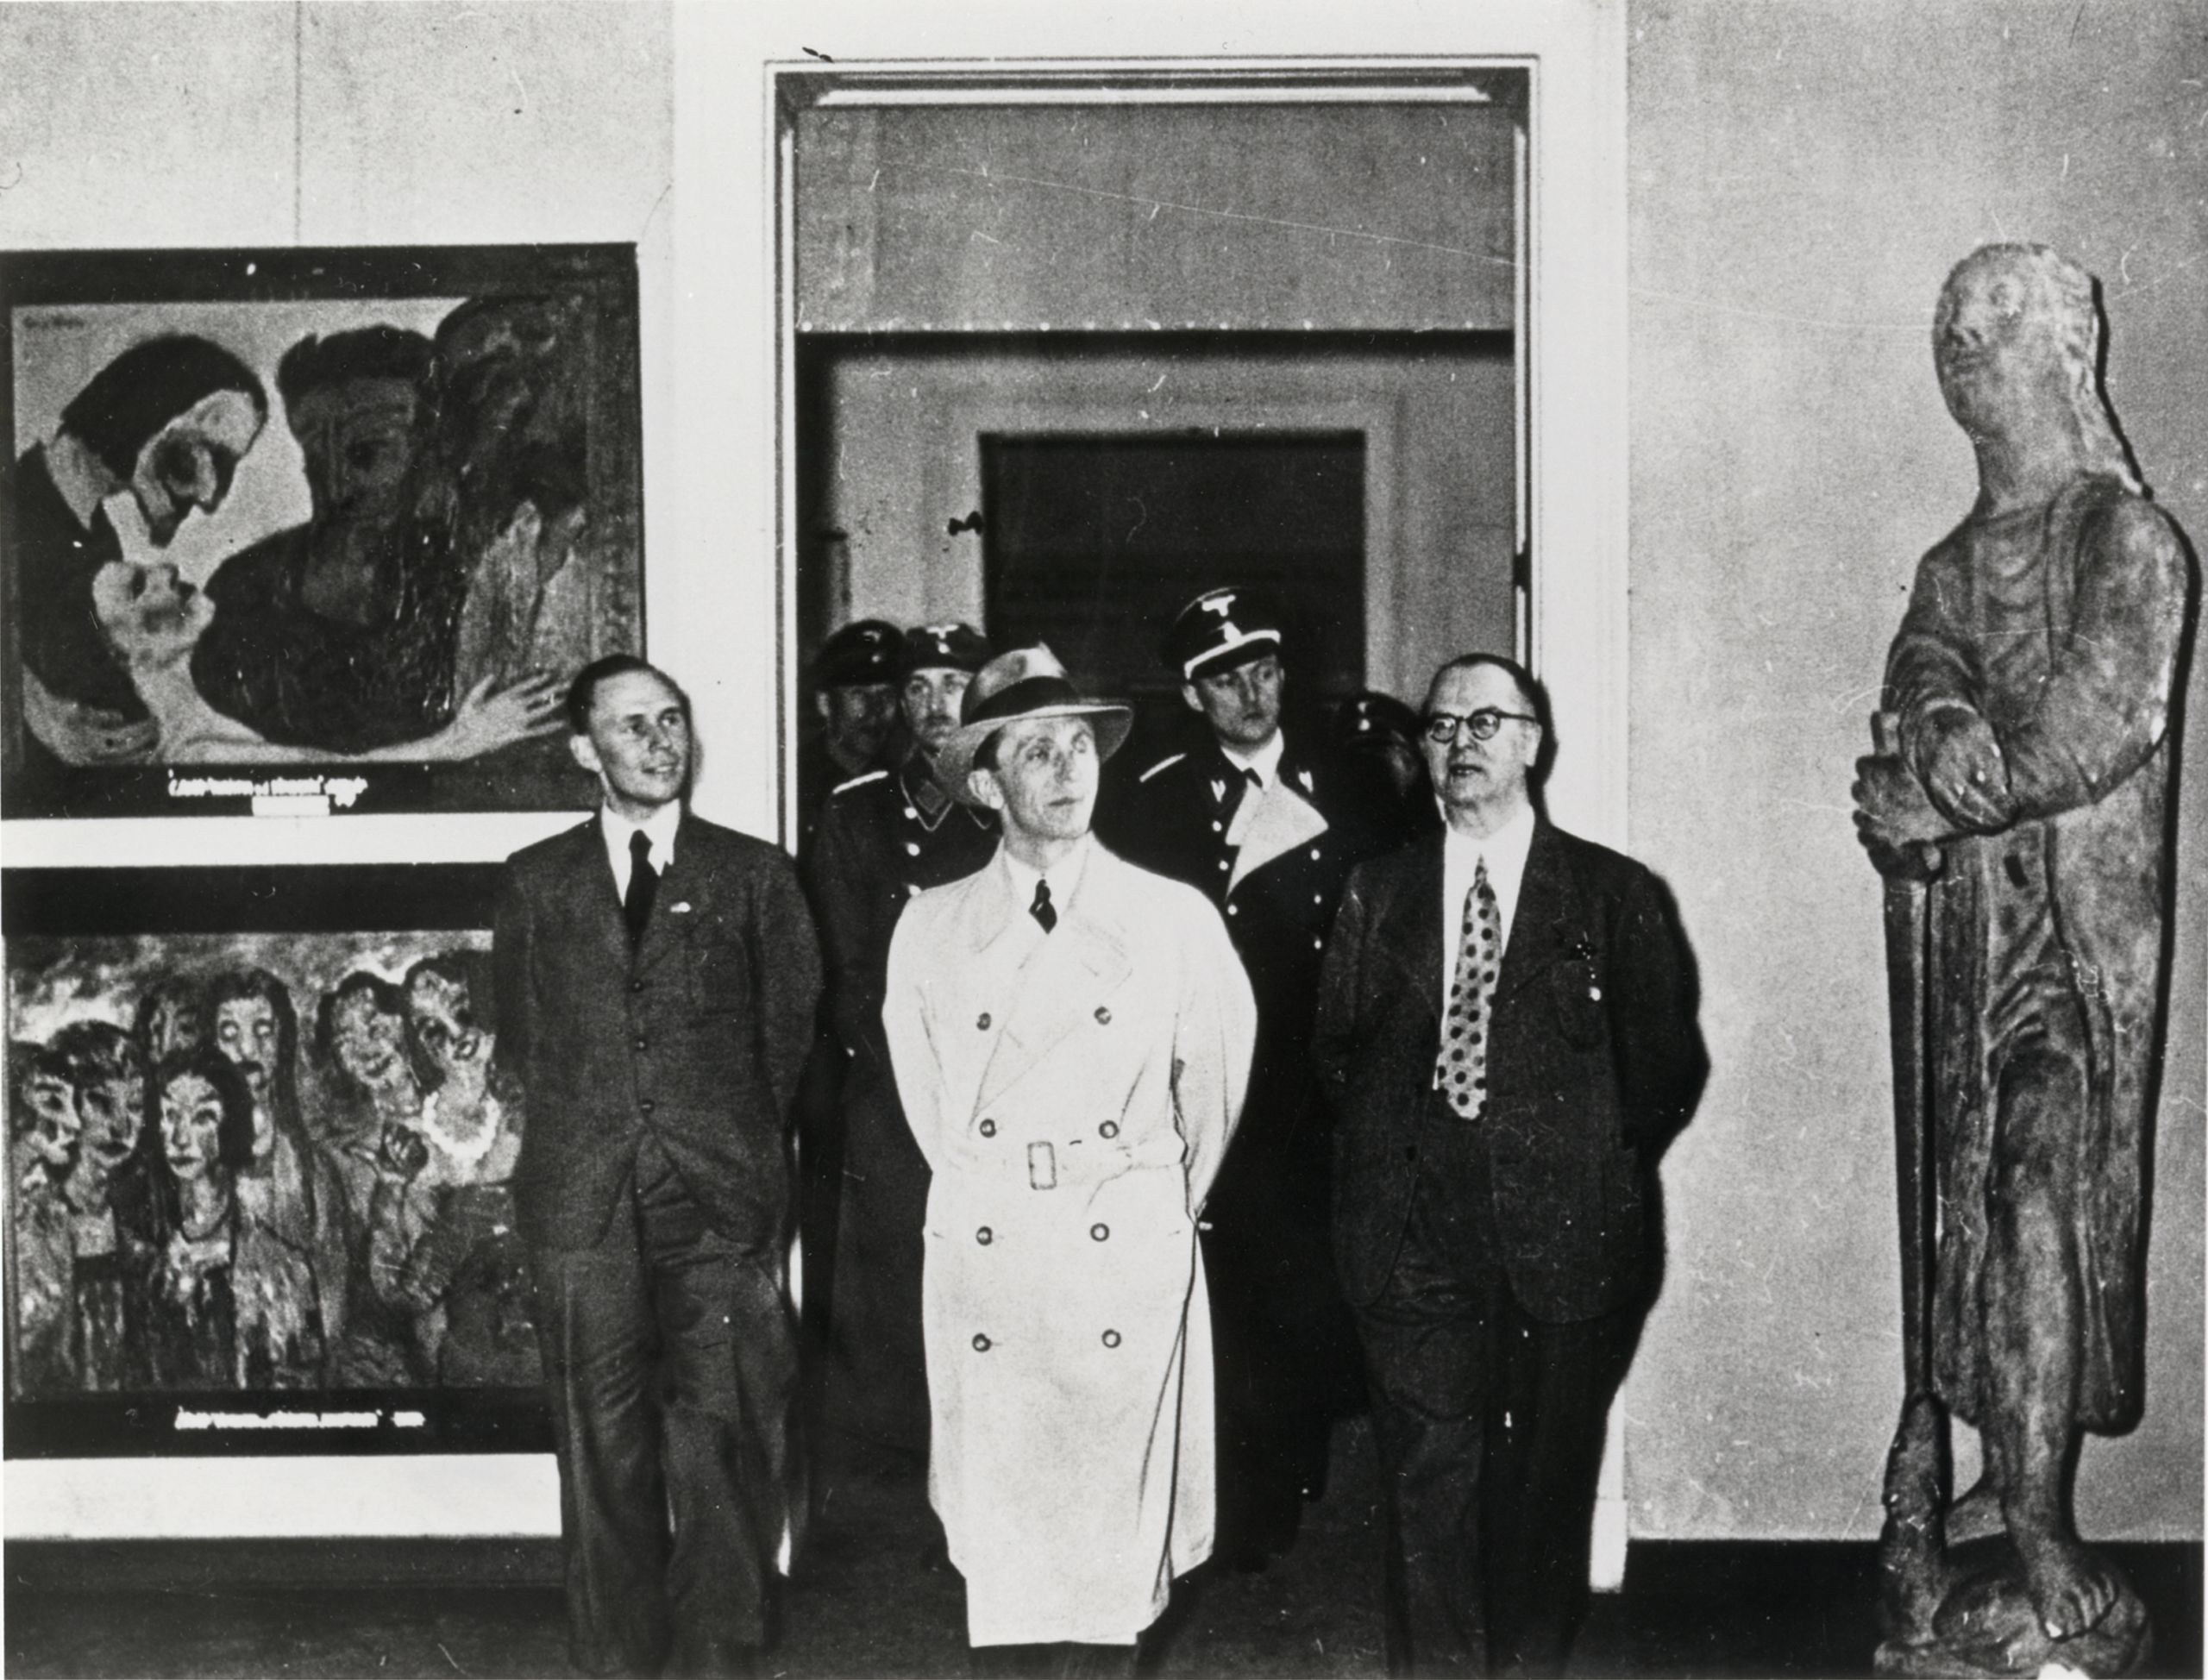 Joseph Goebbels at the 'Degenerate Art' exhibition in Munich, February 1938. Zentralarchiv der Staatlichen Museen zu Berlin / © Nolde Foundation Seebüll